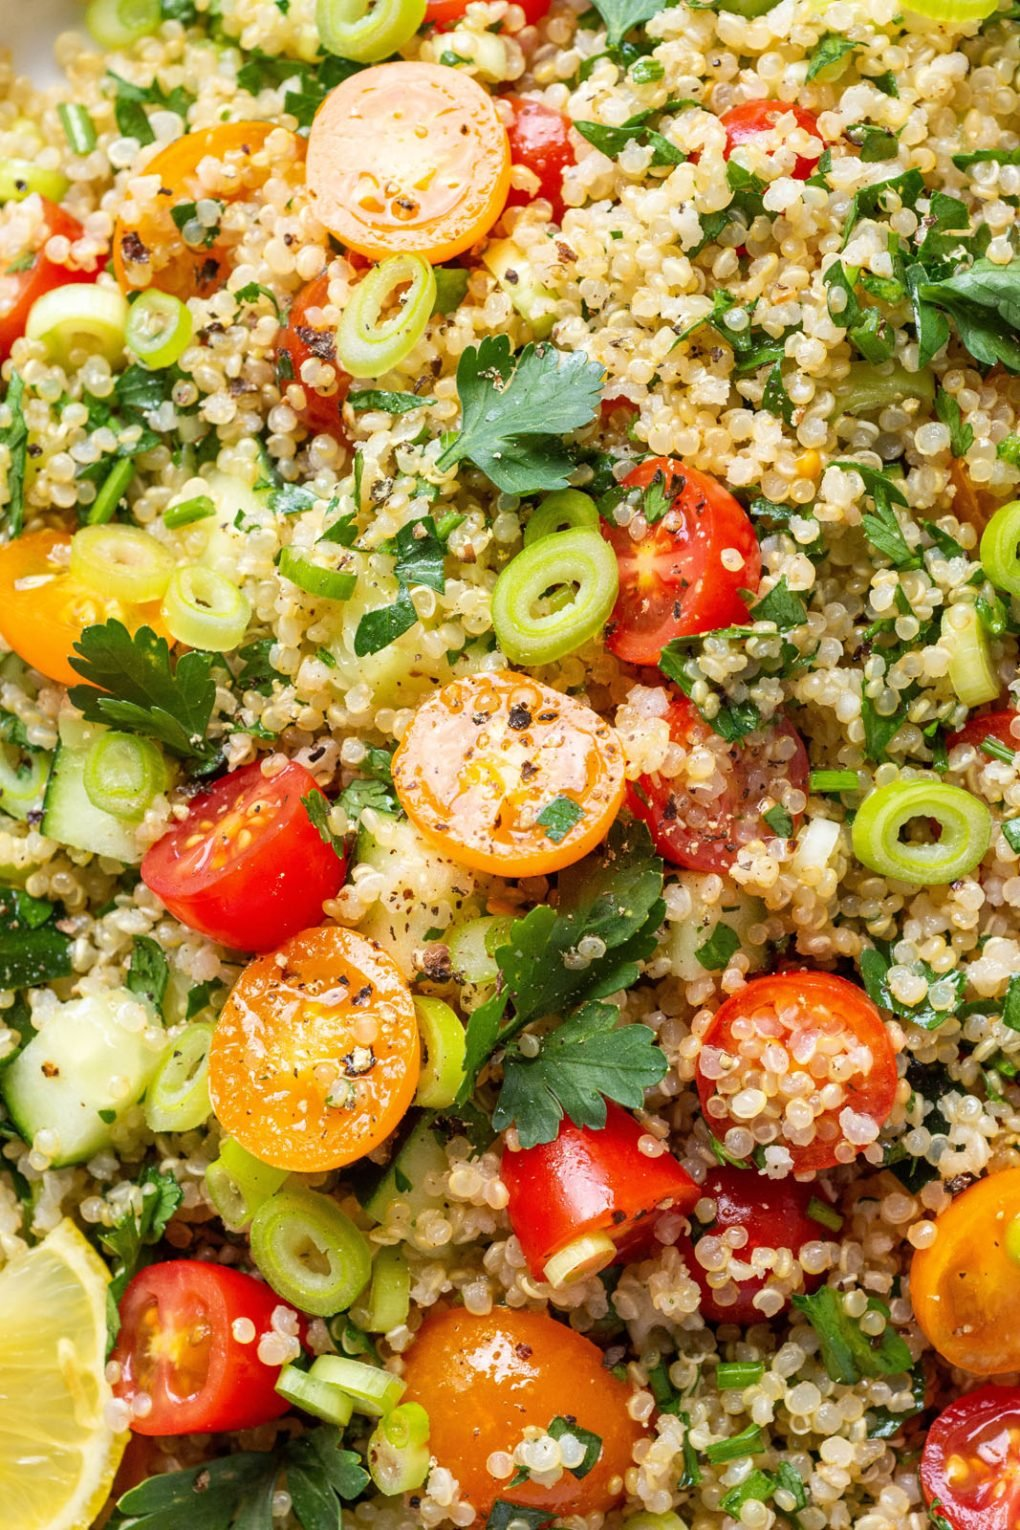 Super up close shot of gluten free quinoa tabbouleh with glistening olive oil and freshly cracked black pepper.